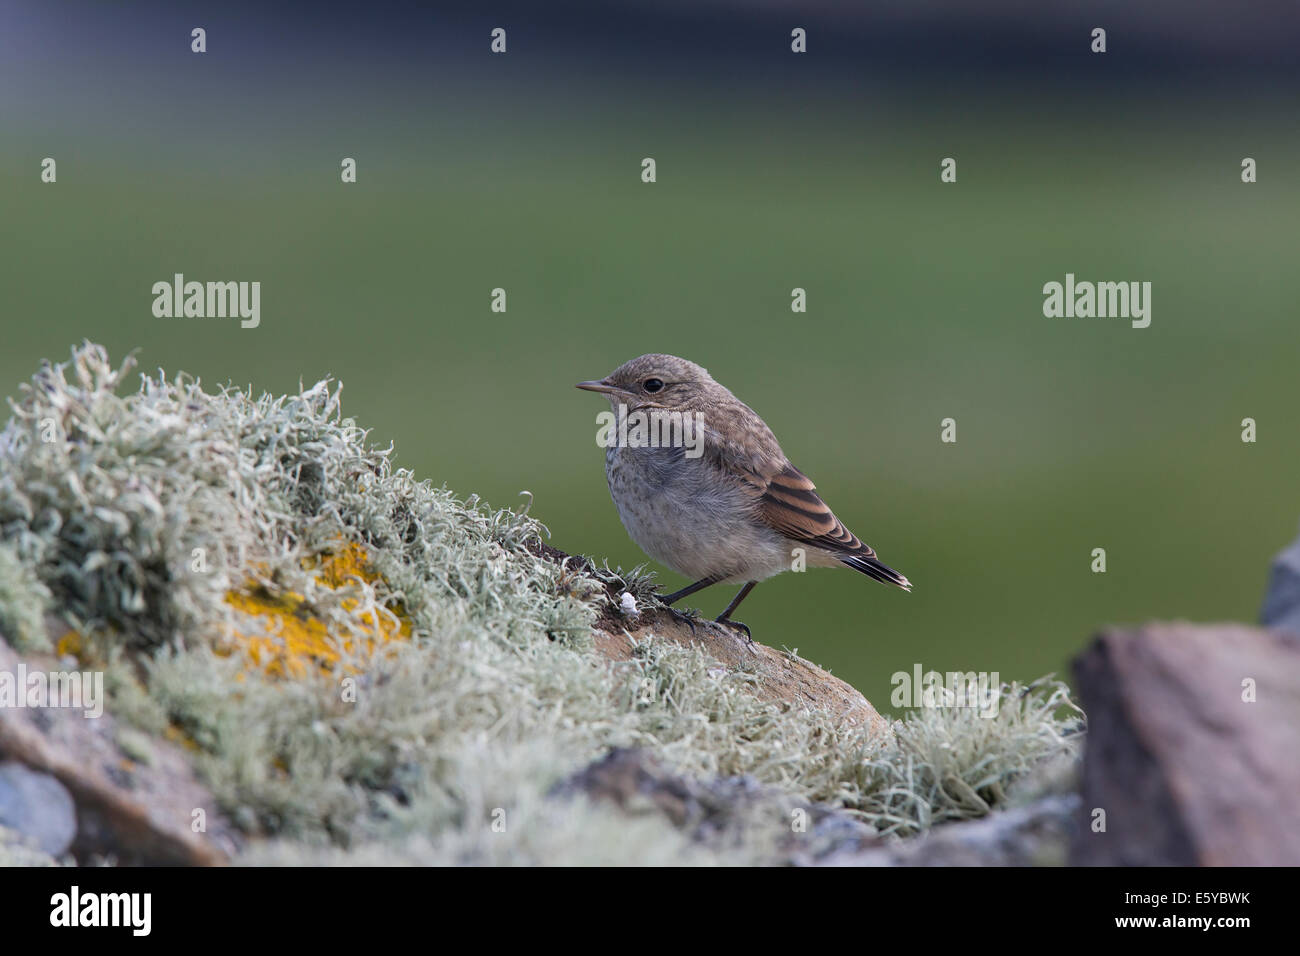 Young Northern Wheatear, Oenantha oenanthe, sitting on stone wall - Stock Image